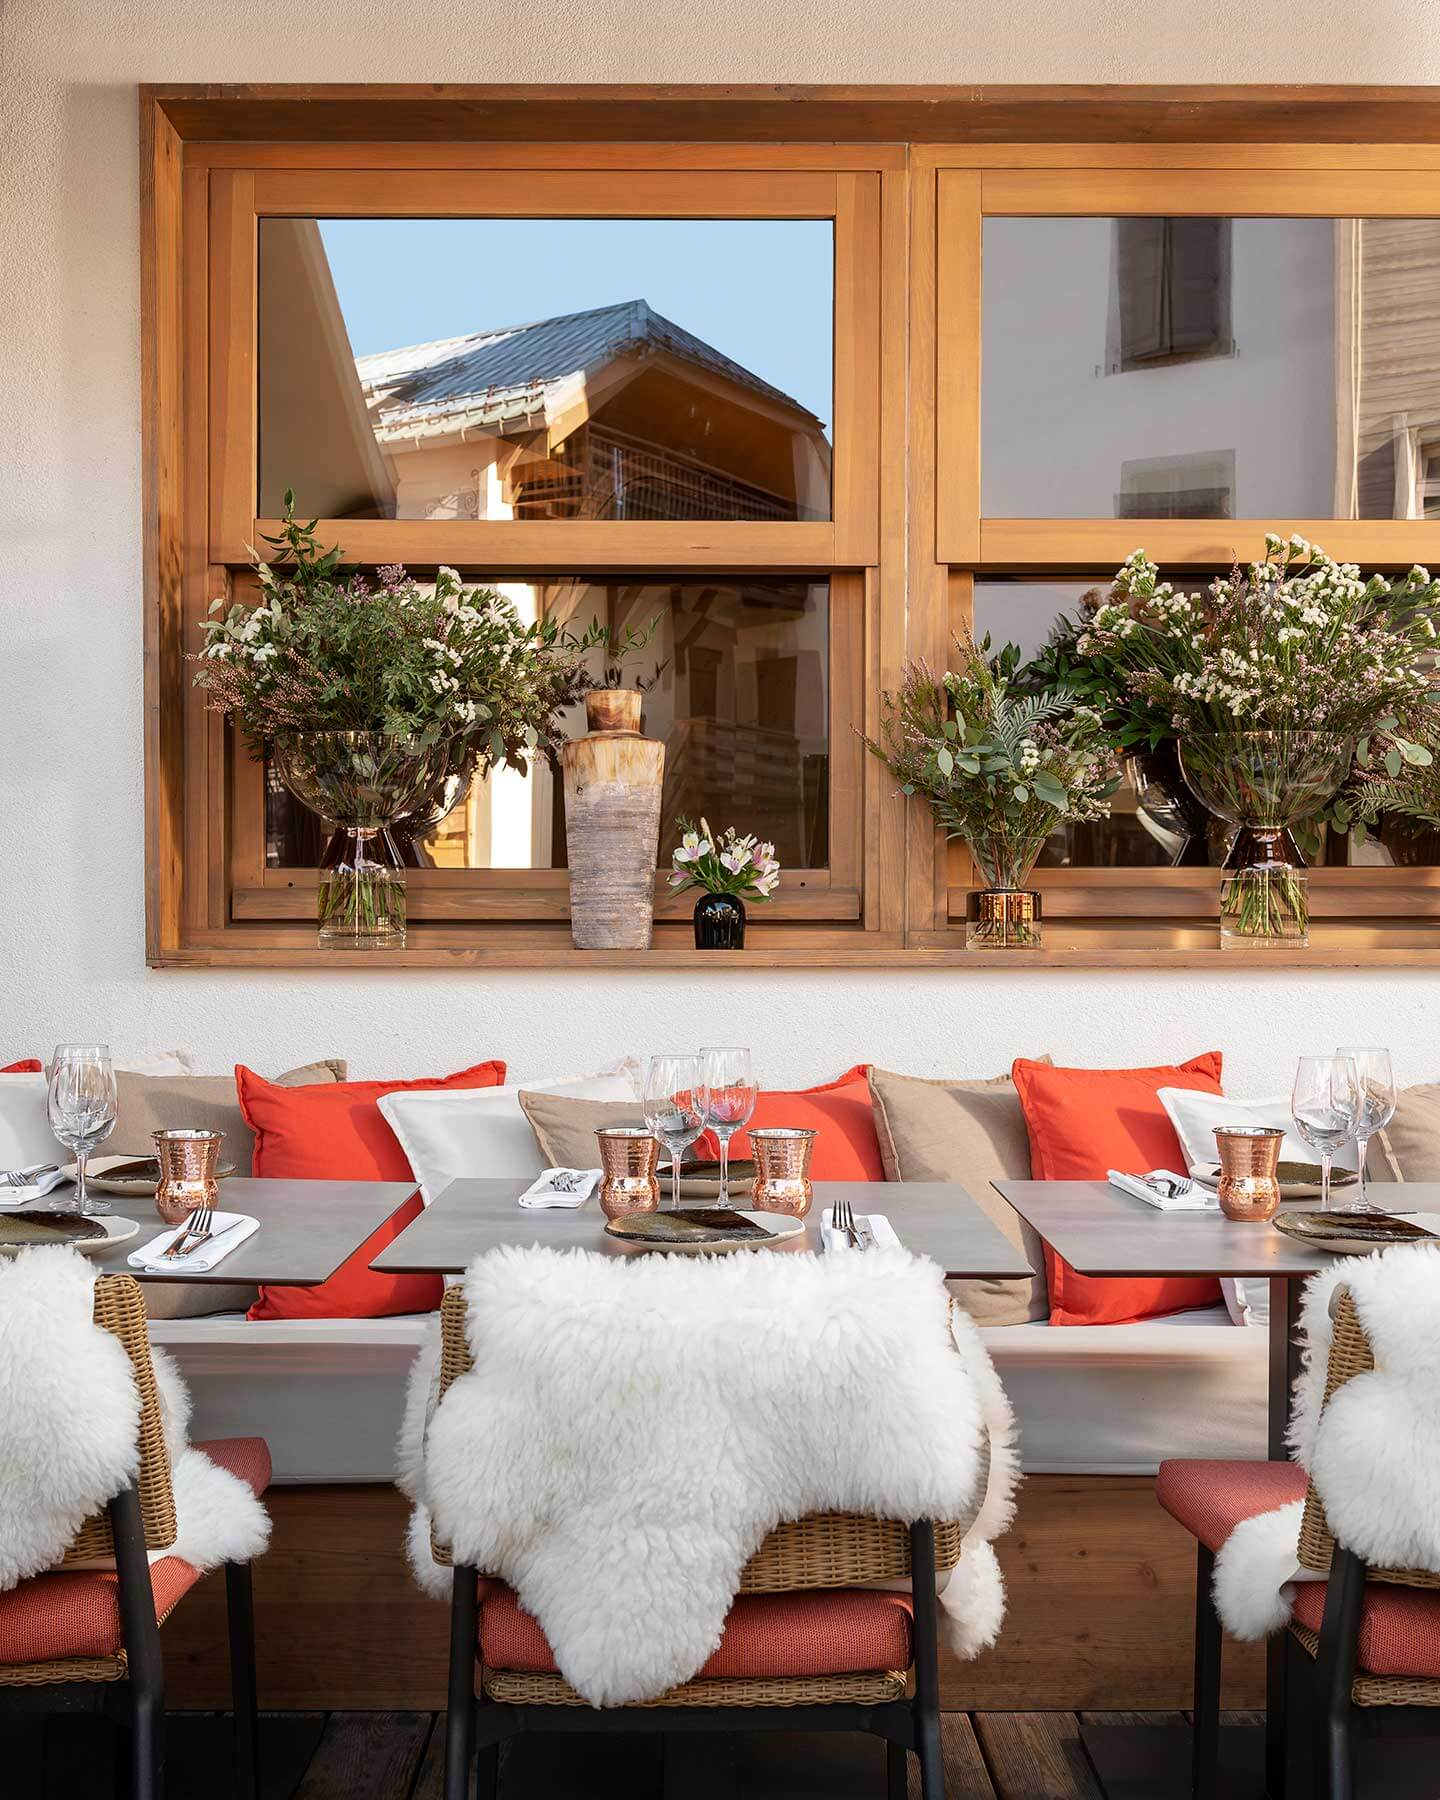 Restaurant terrace, bench seat with multicoloured cushions and chairs with white fake fur